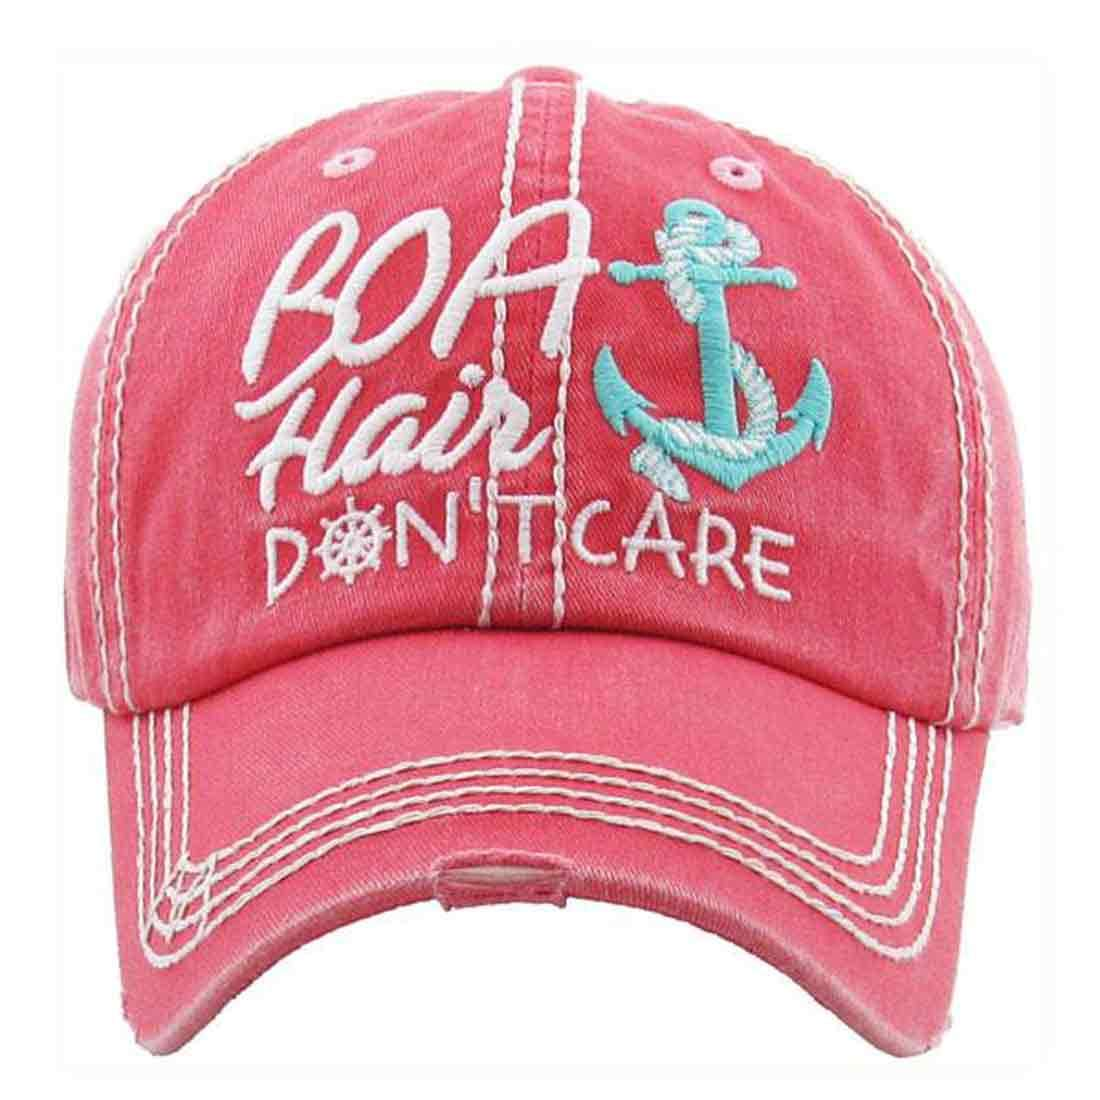 Boat Hair Don't Care Women's Vintage Cotton Baseball Hat